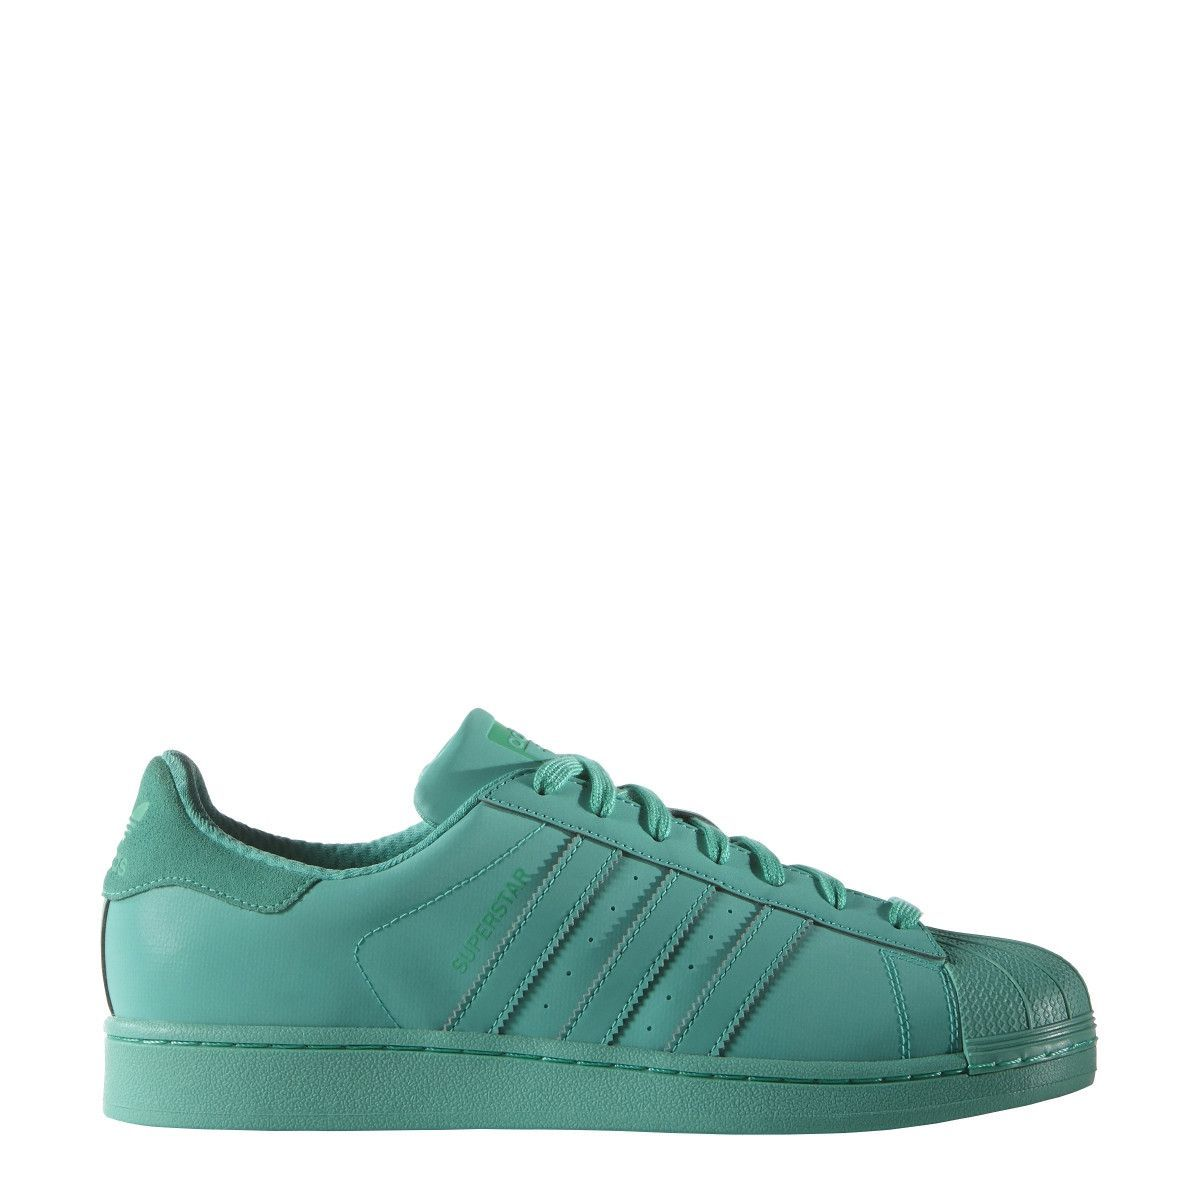 MENS ADIDAS SUPERSTAR ADICOLOR SNEAKERS | Chaussure adidas